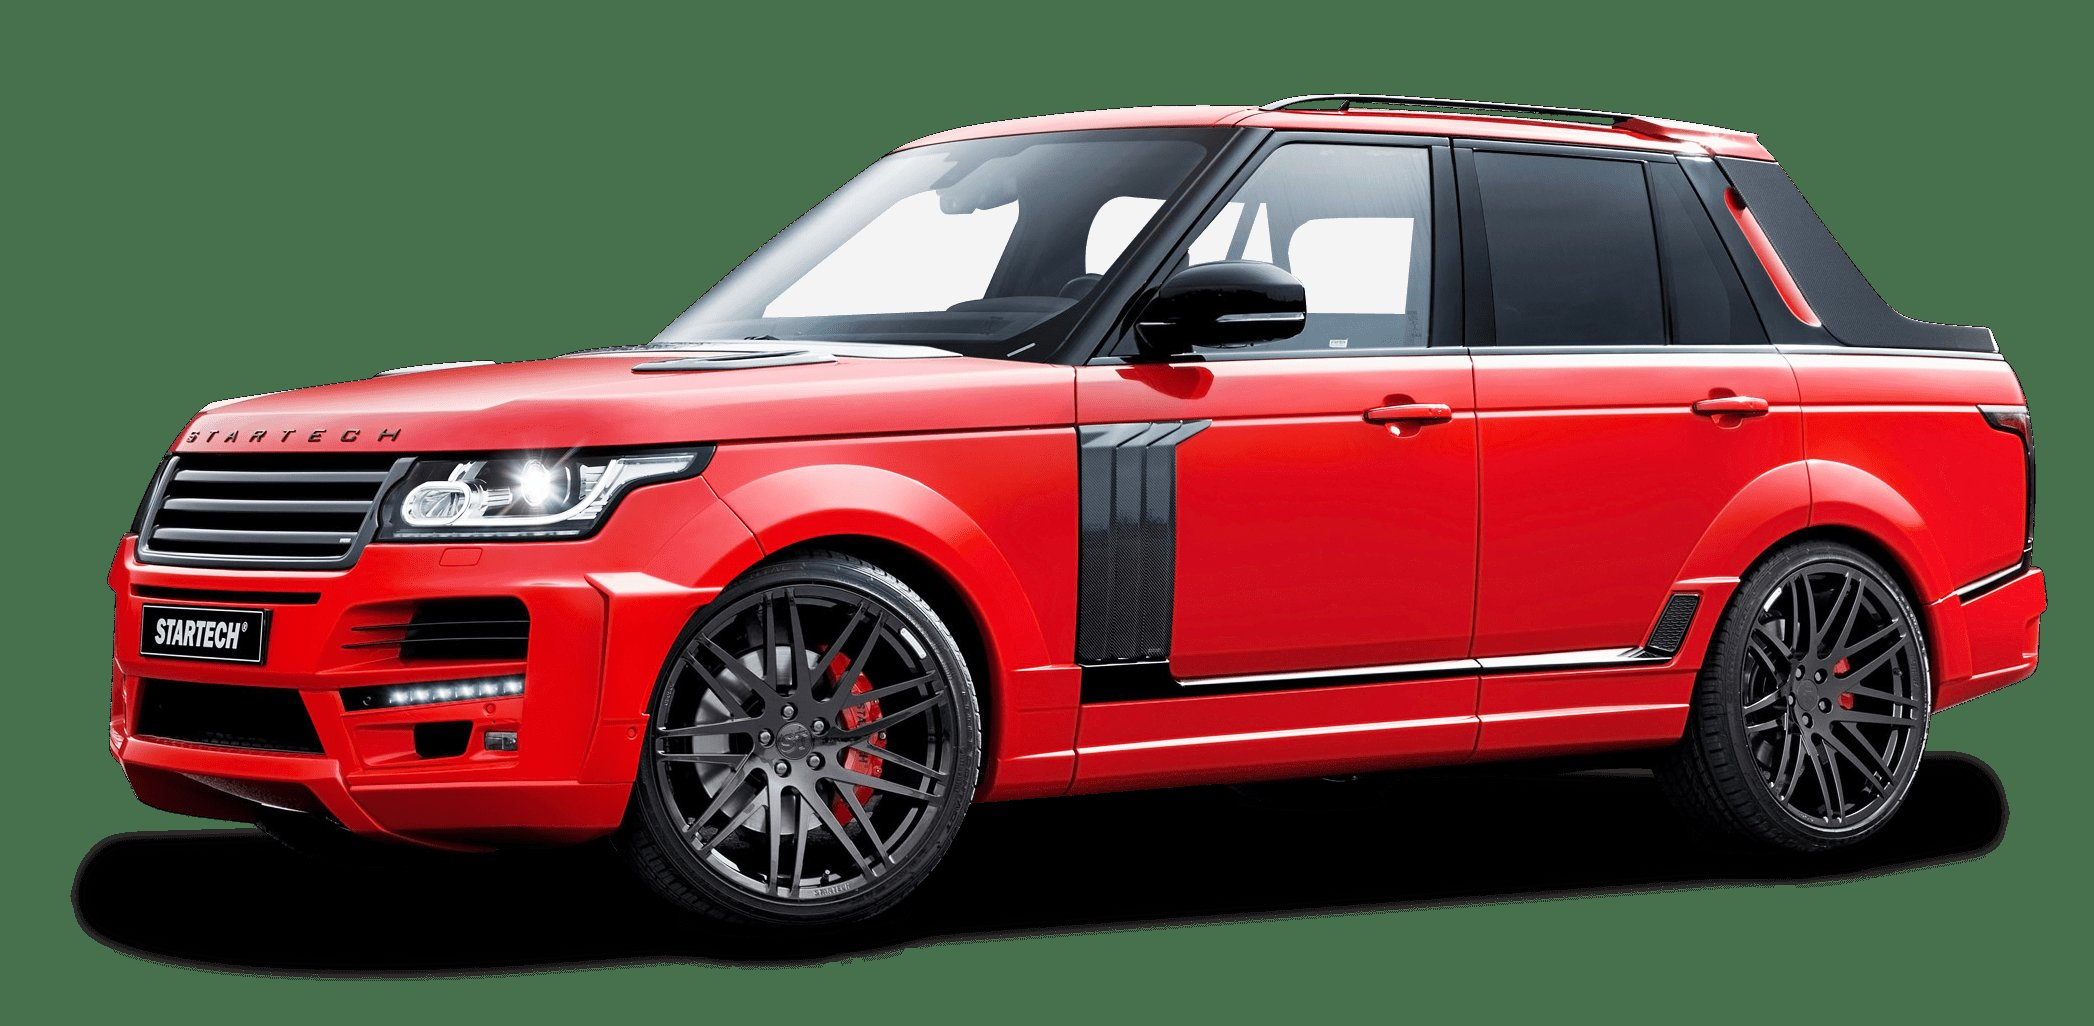 New Startech Range Rover Pickup Red Truck Png Image Pngpix On This Month